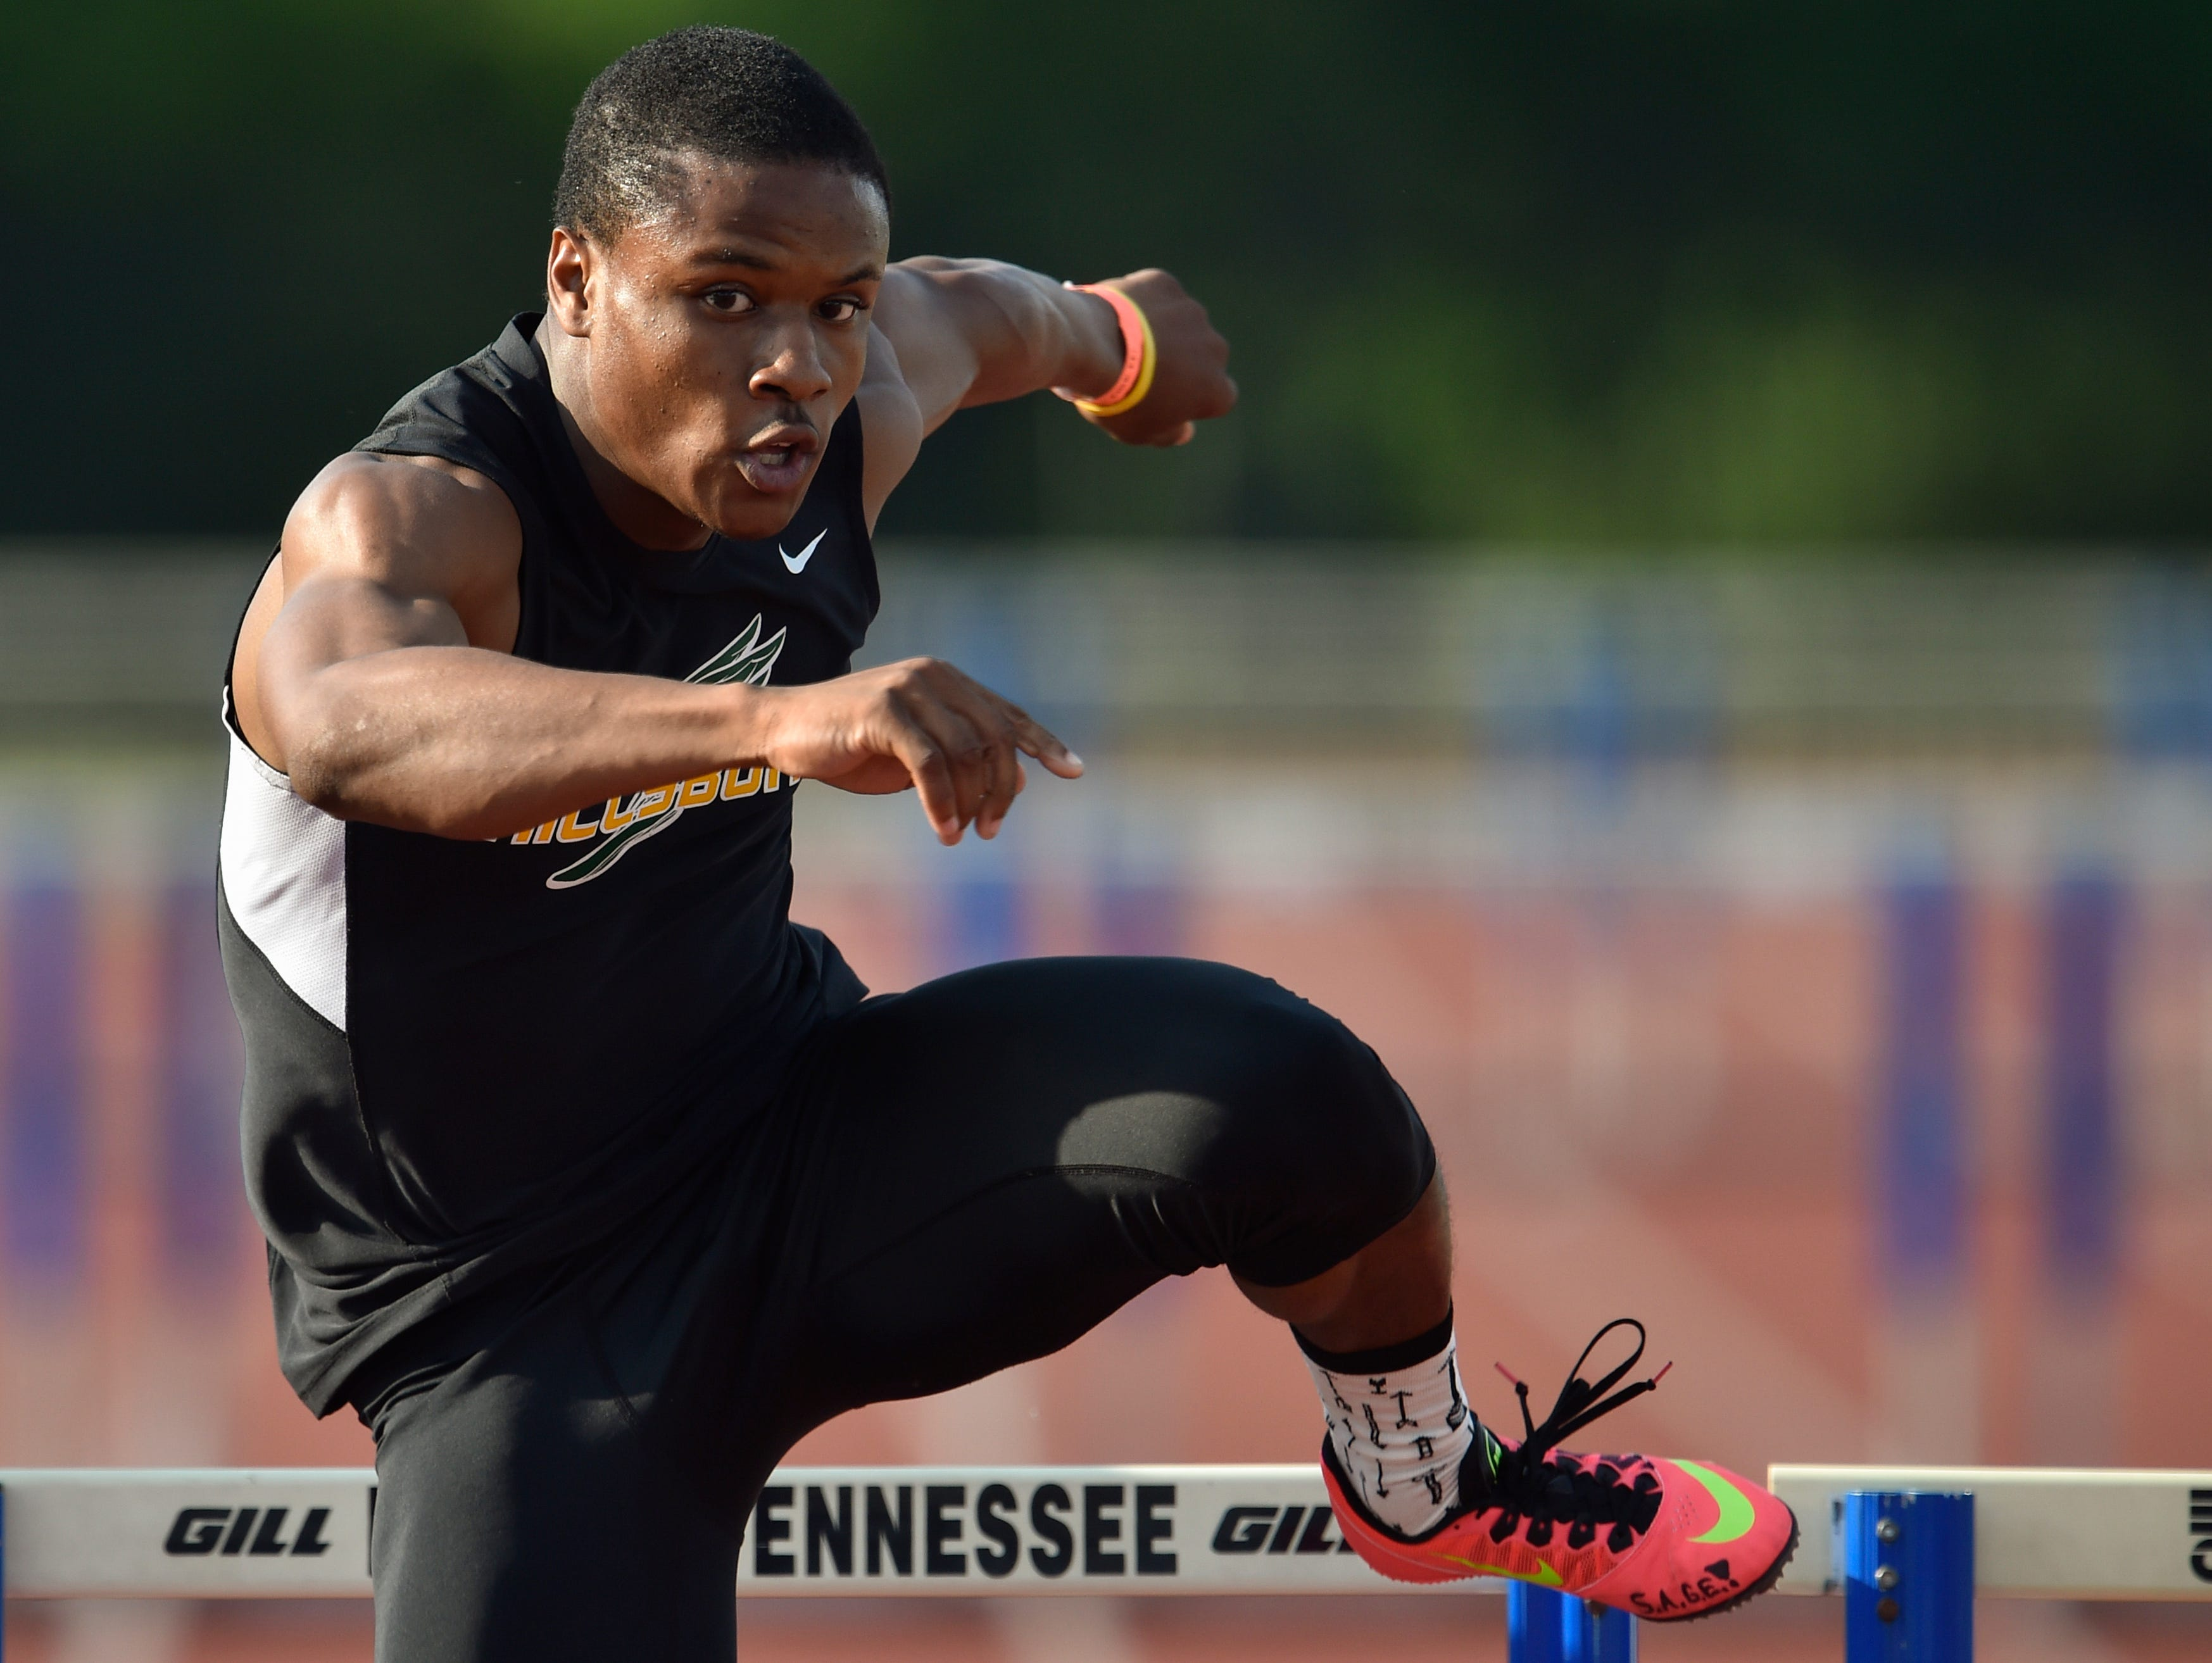 Hillsboro's John Wilkerson competes in the 300m Hurdles during the Spring Fling boys state track meet at MTSU's Dean Hayes Track and Field Stadium, Friday, May 27, 2016, in Murfreesboro, Tenn.